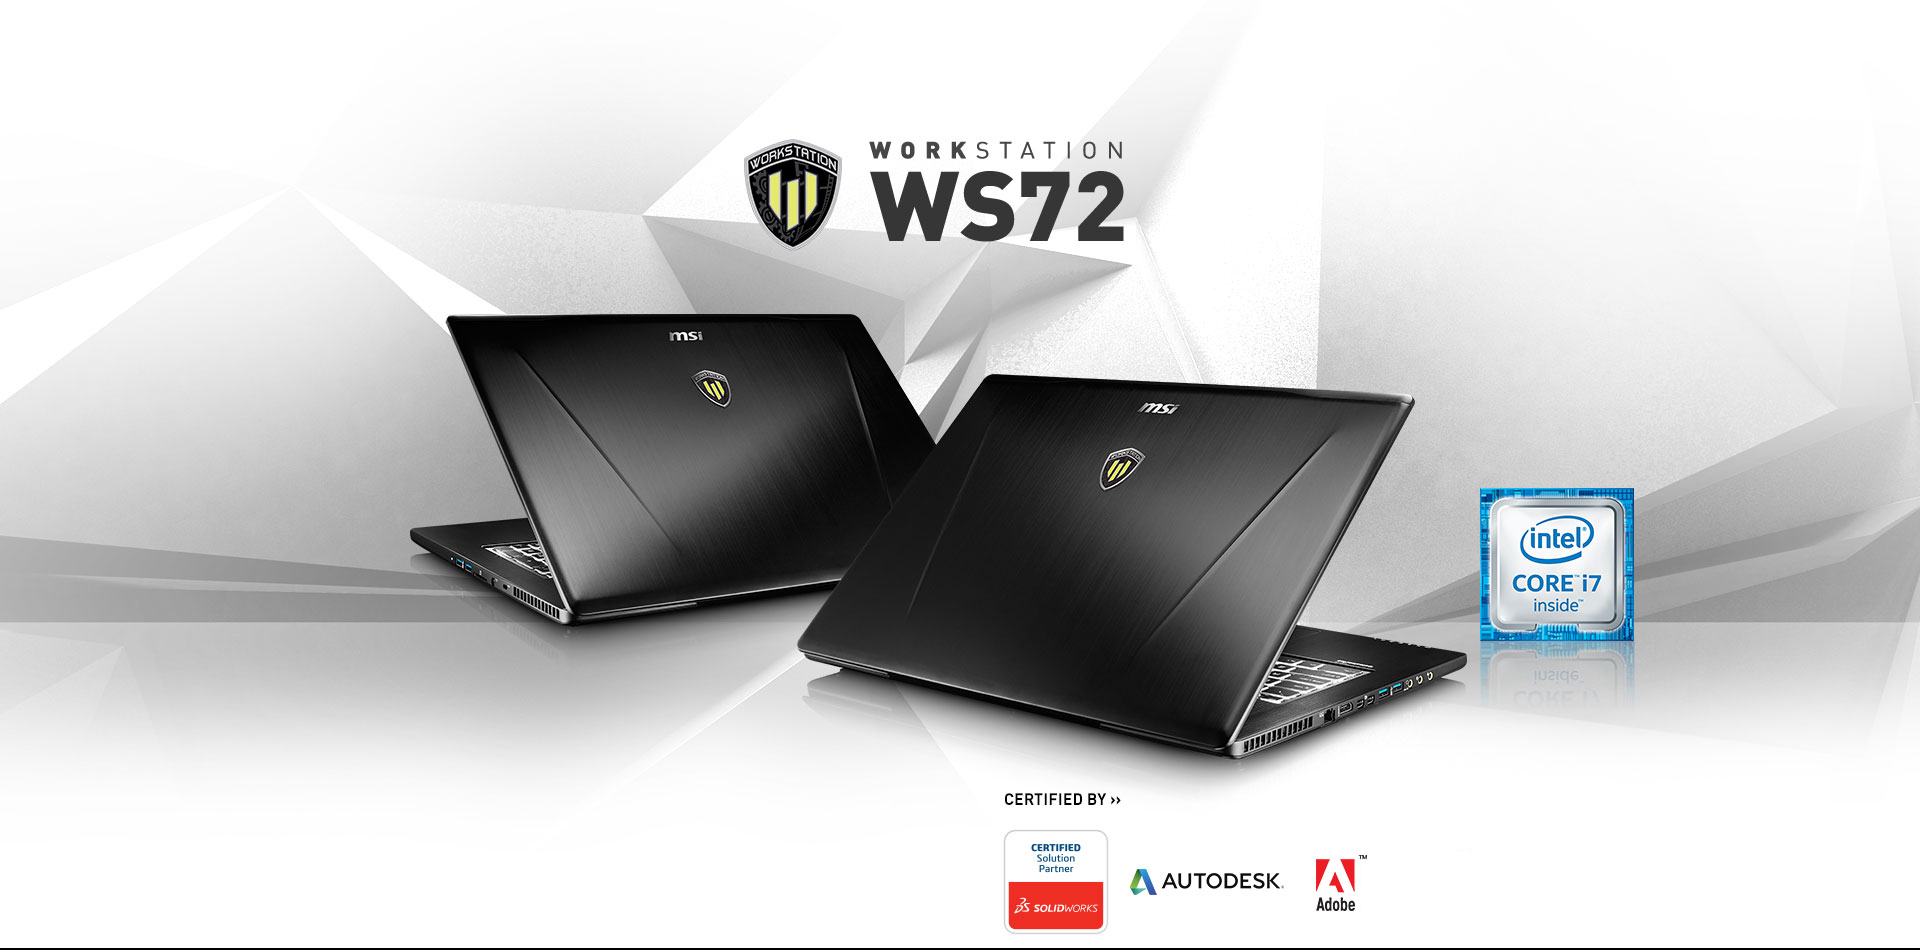 WS72 6QI | Workstation - The best laptop for CAD & 3D modeling | MSI ...